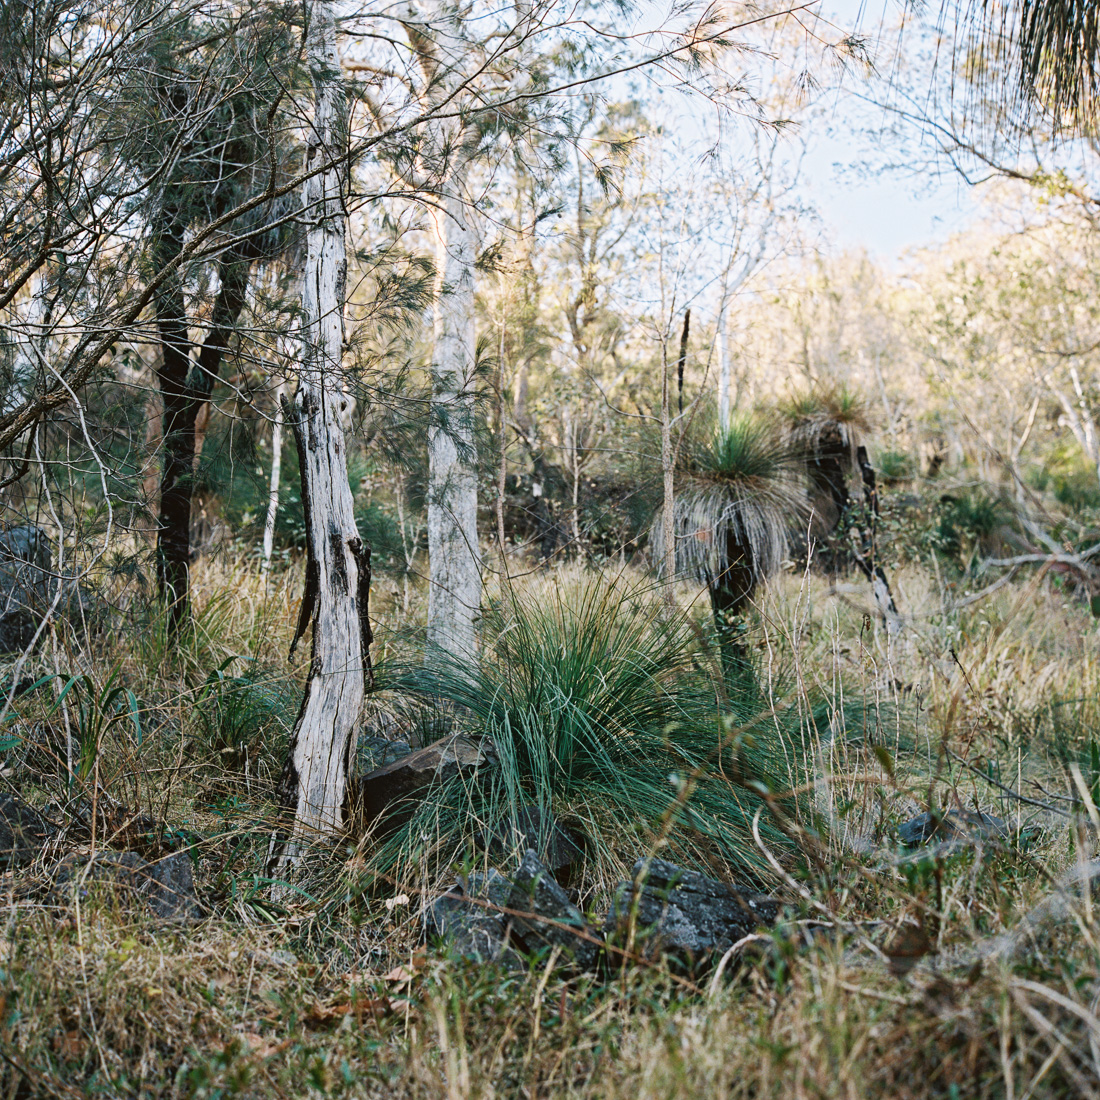 Grass and gum trees.